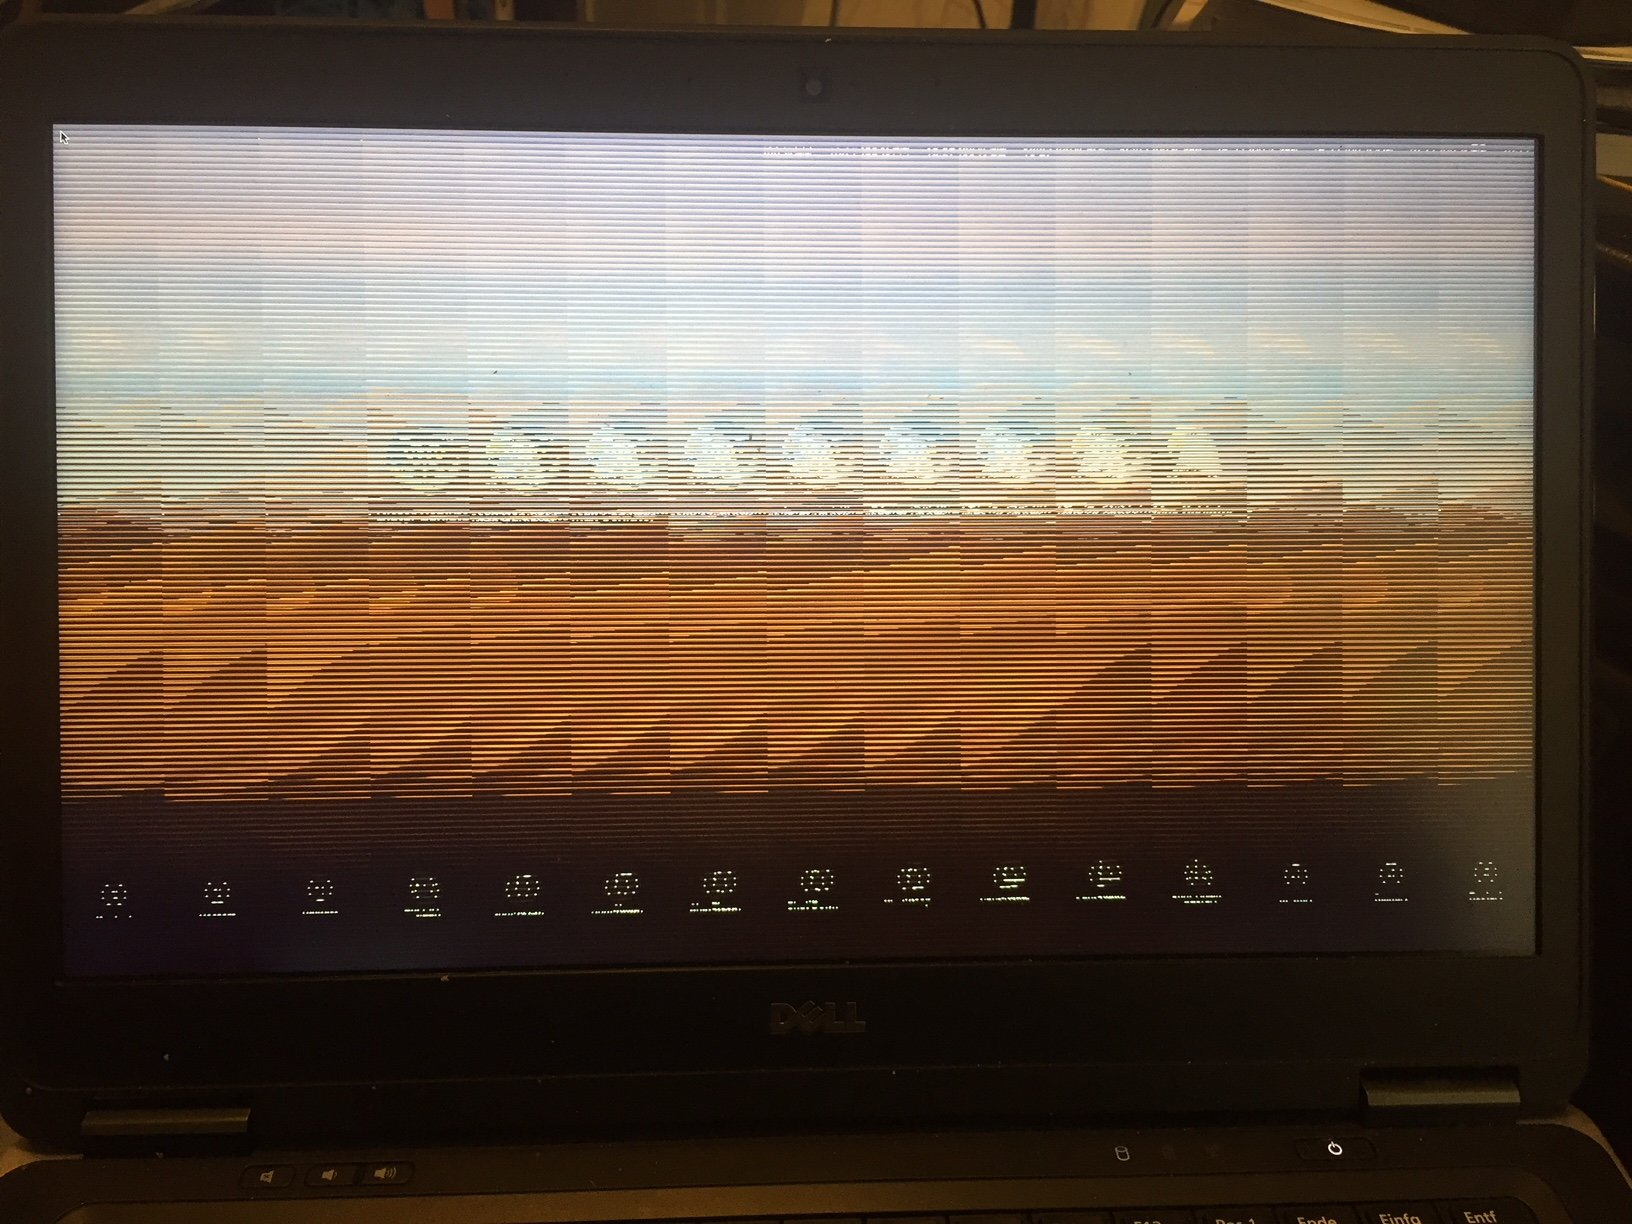 Dell E7440 Screen Resolution/ Garbled 1920x1080 - Page 2